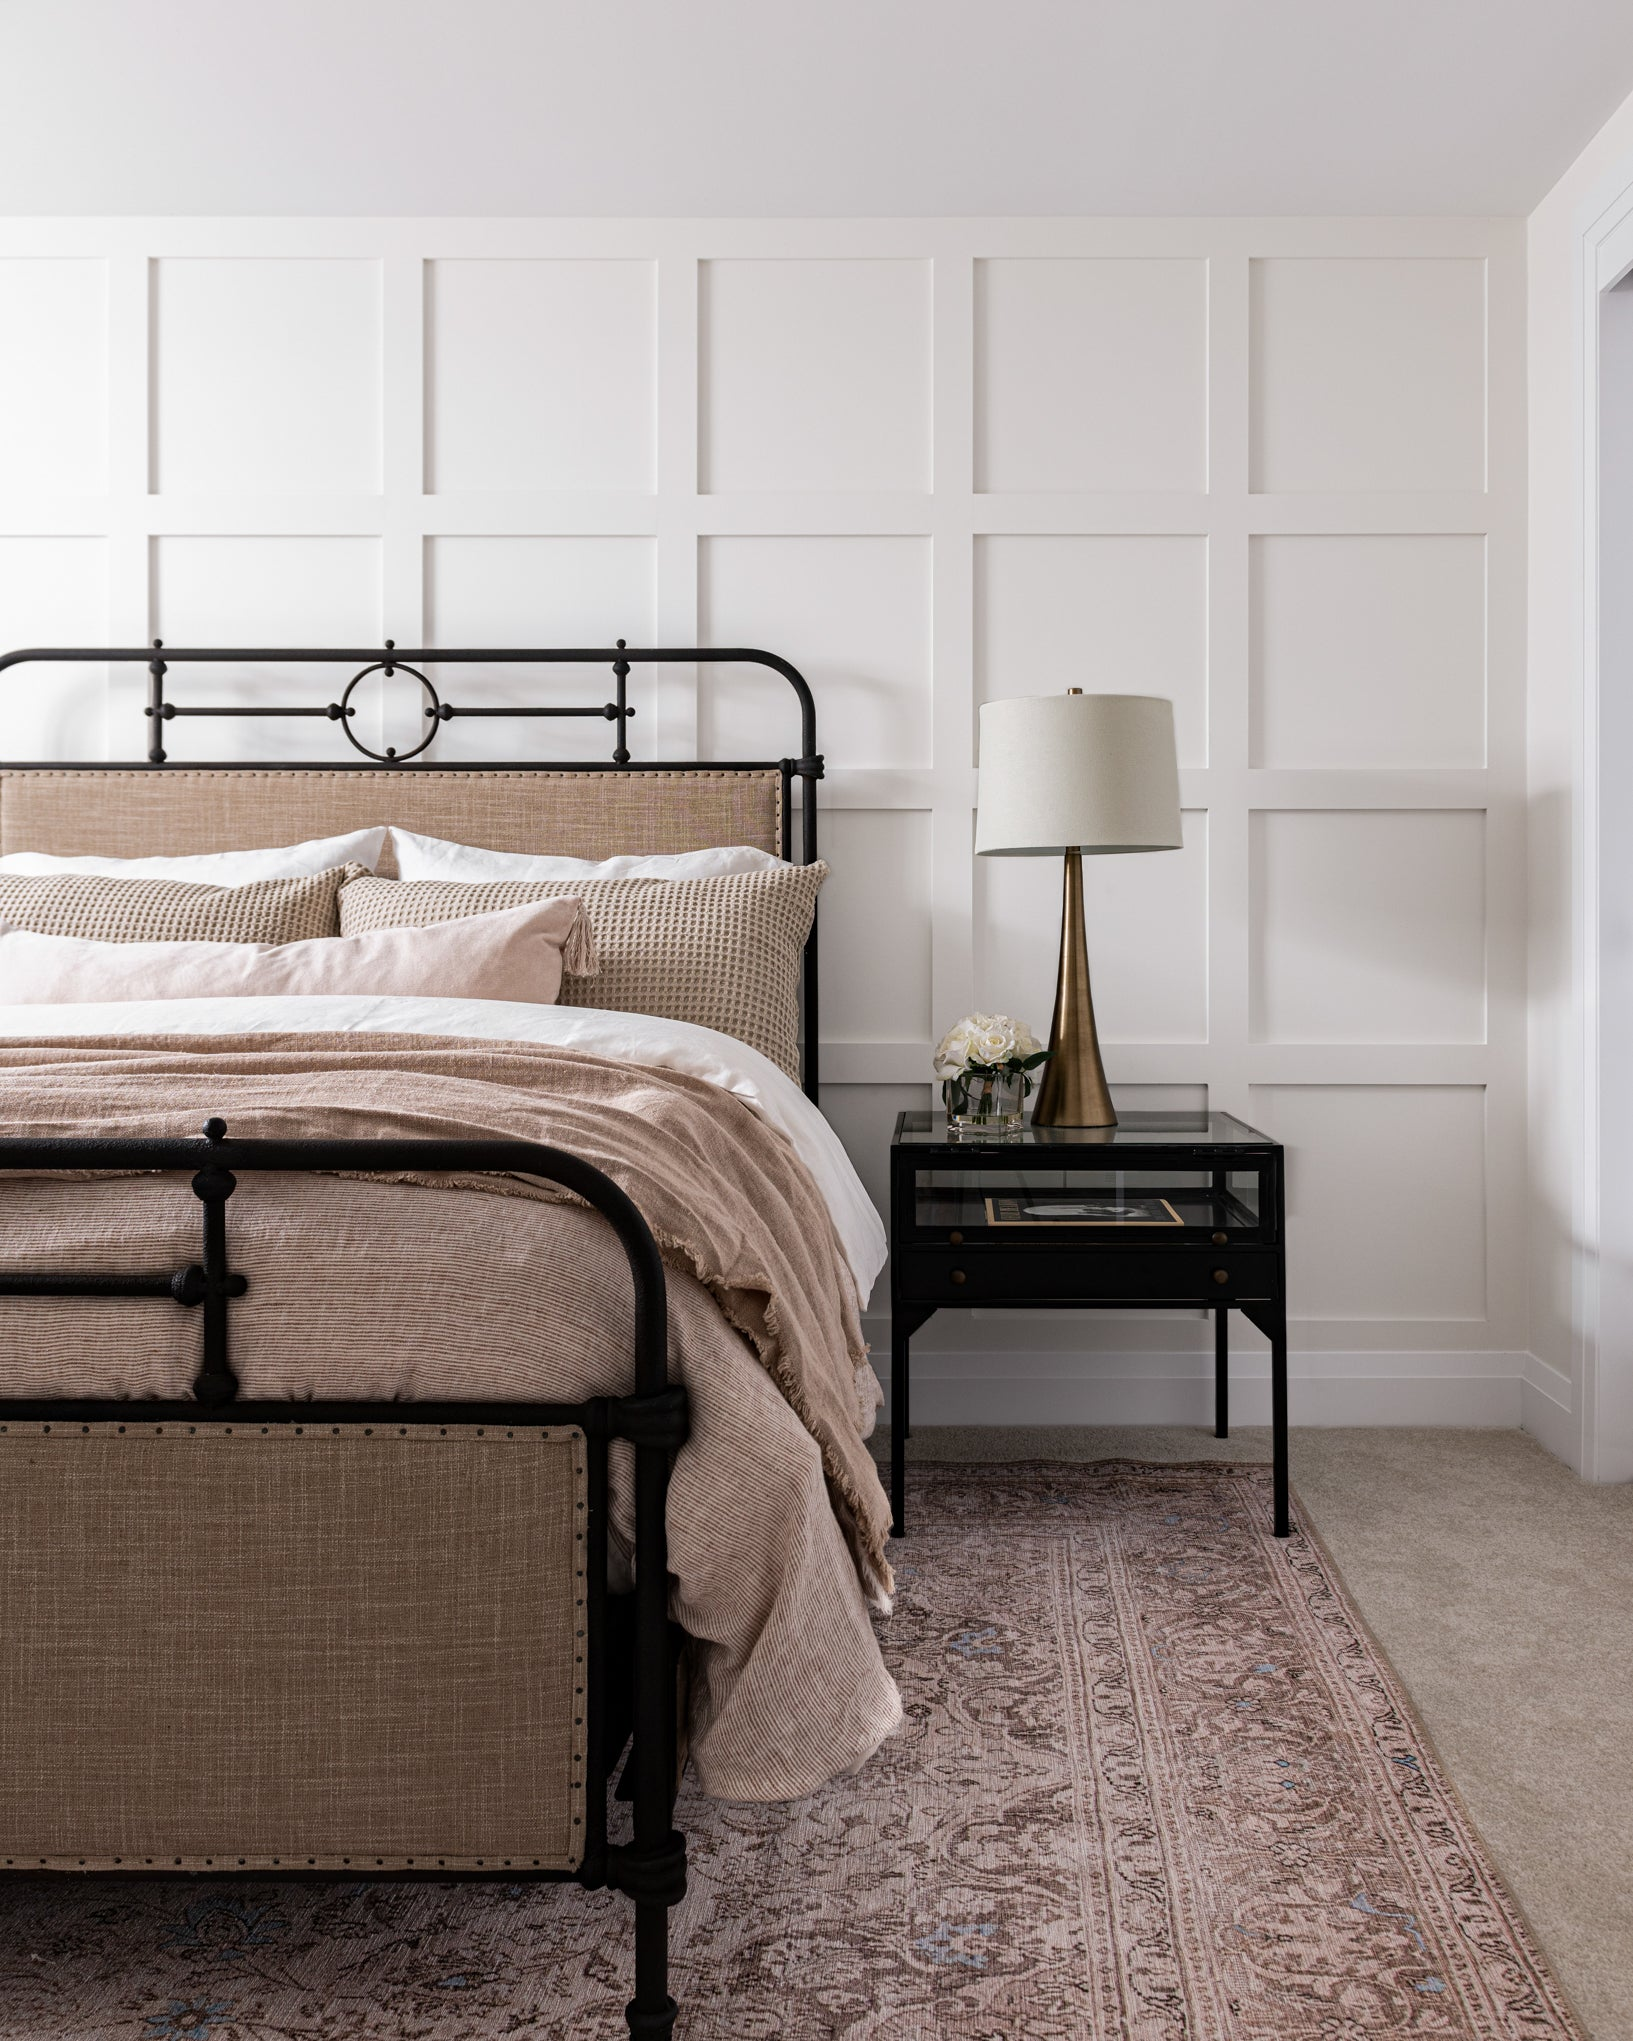 Nighstand and bed pairing in guest bedroom.